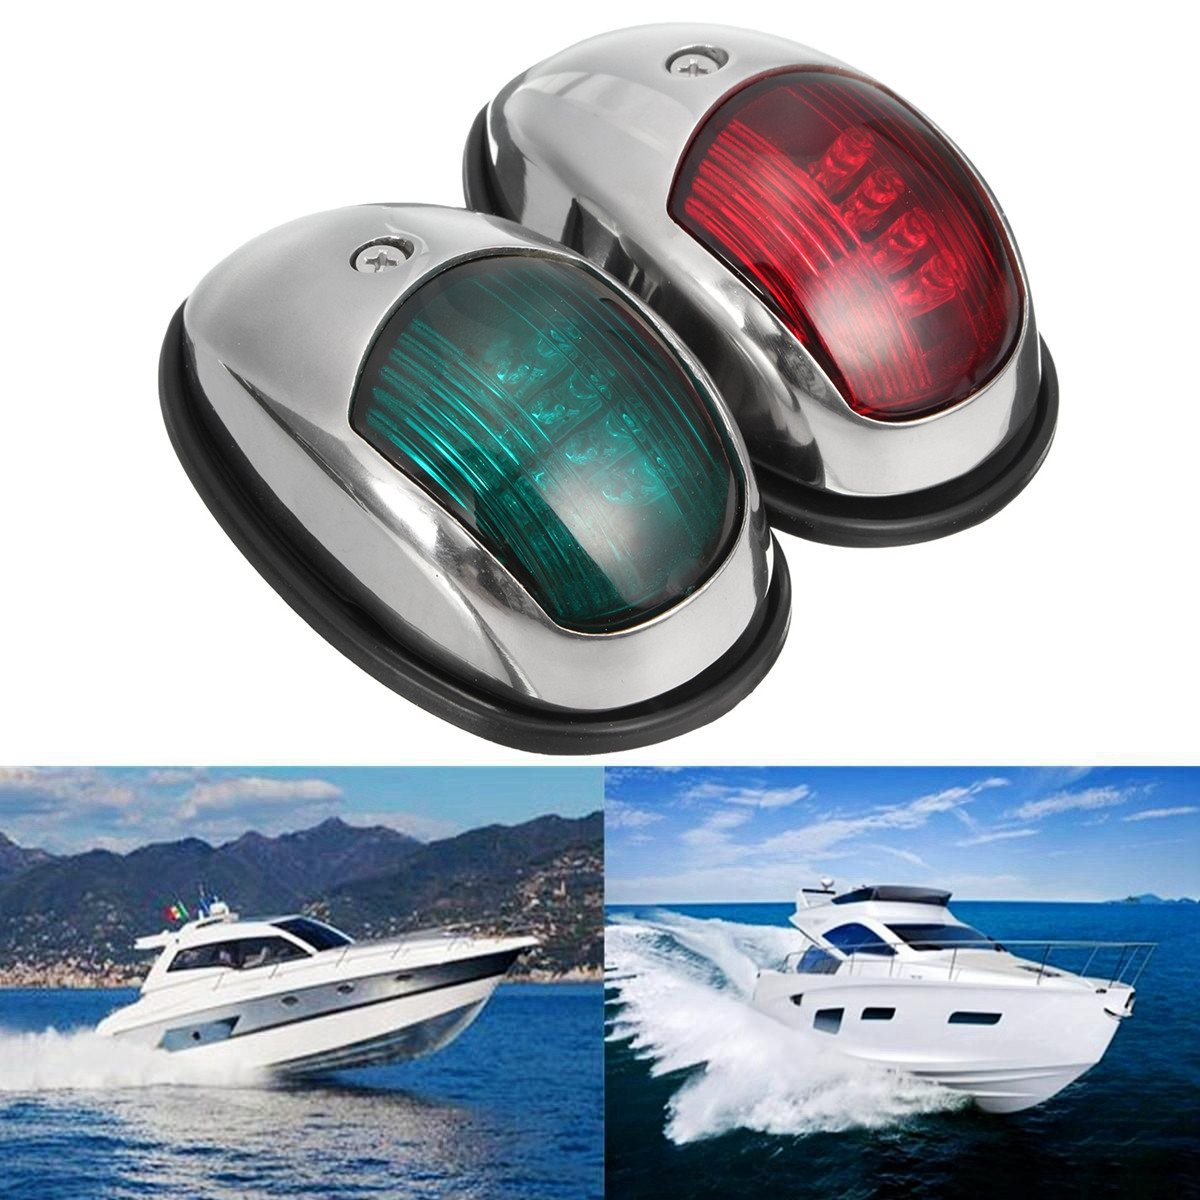 Stainless Steel LED Navigation Lamp Marine Port Side Starboard font b Light b font 12V 5W